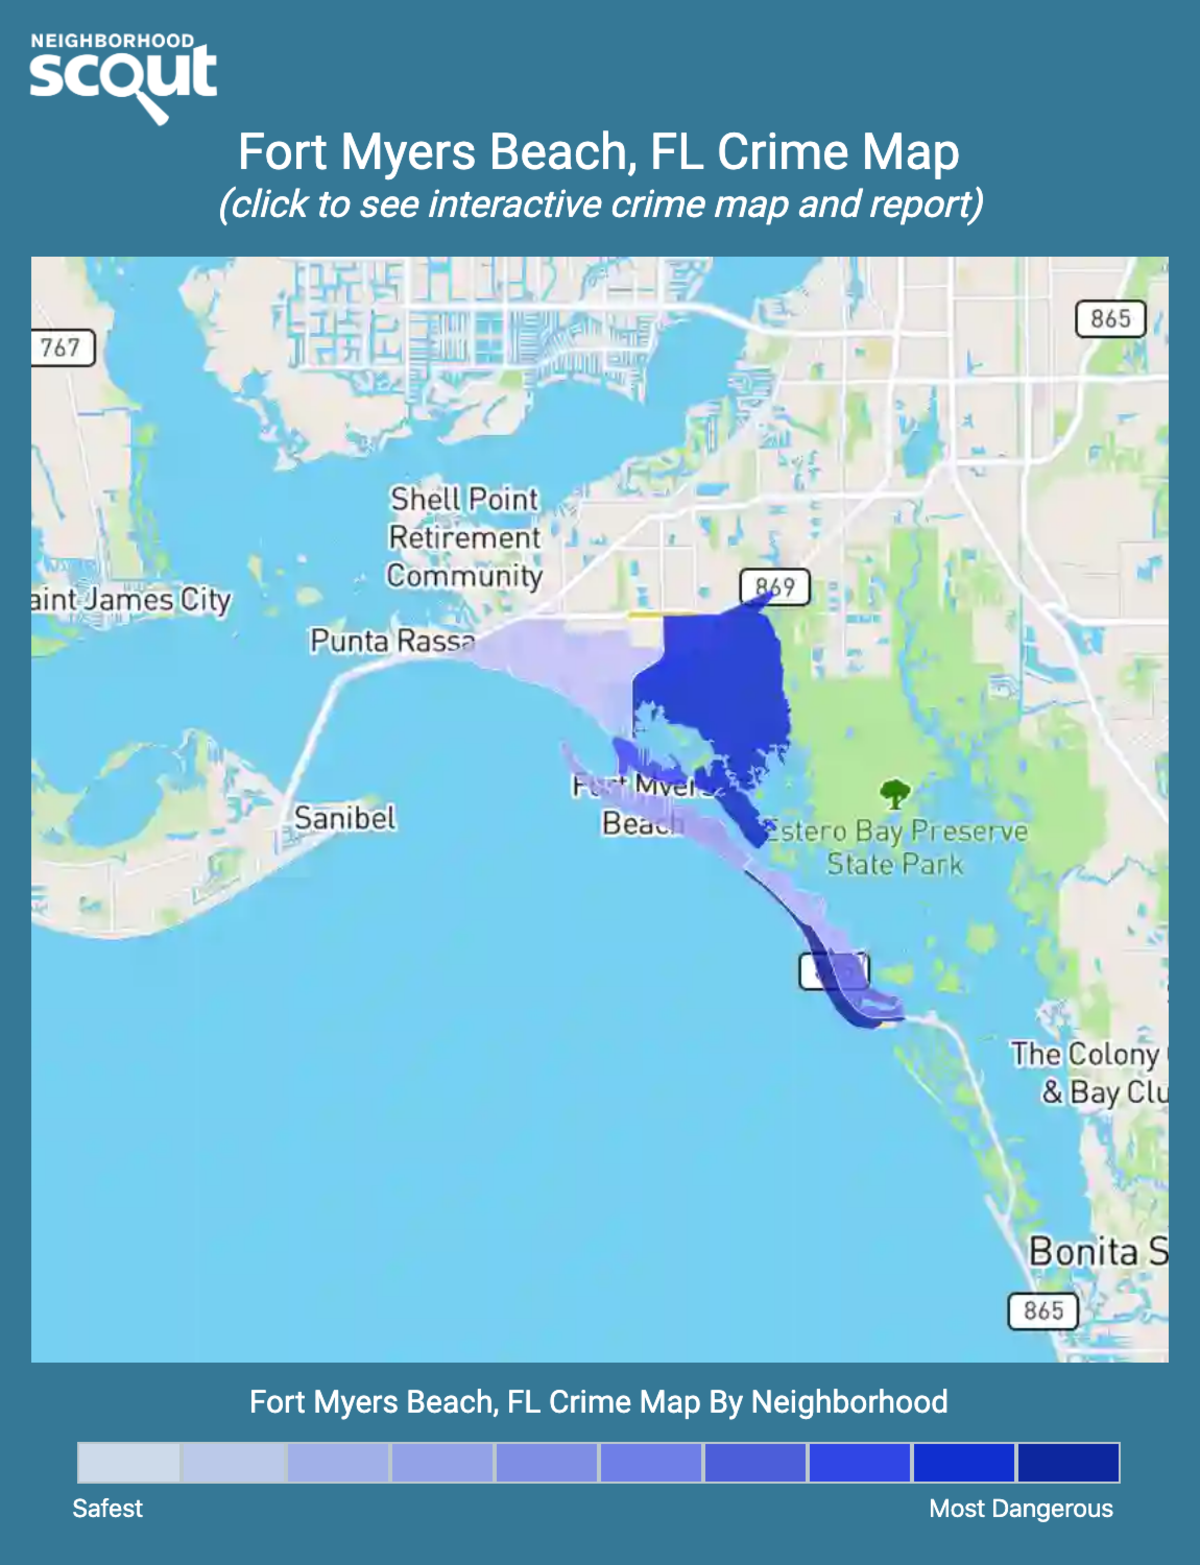 Fort Myers Beach, Florida crime map